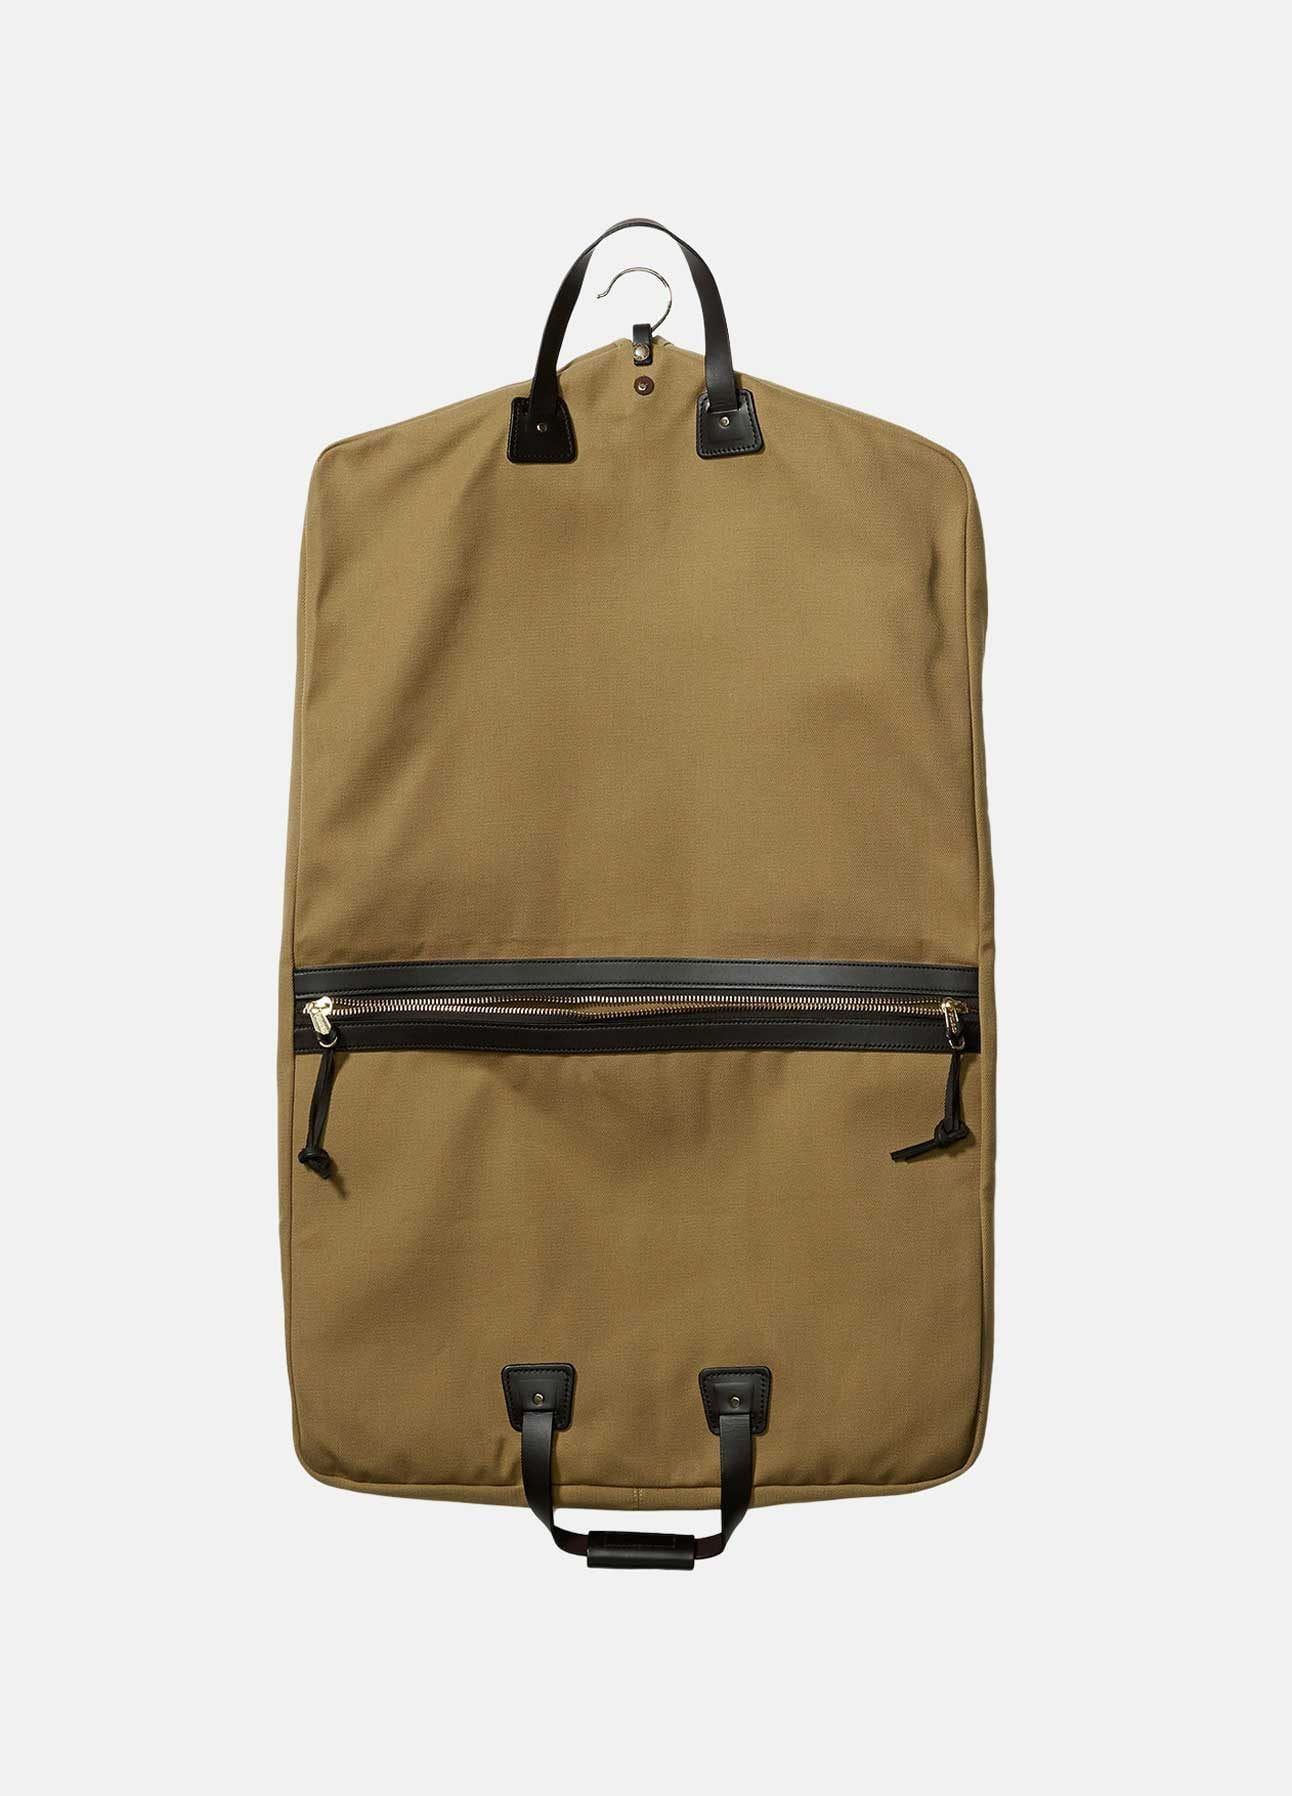 Tan suit cover fra Filson